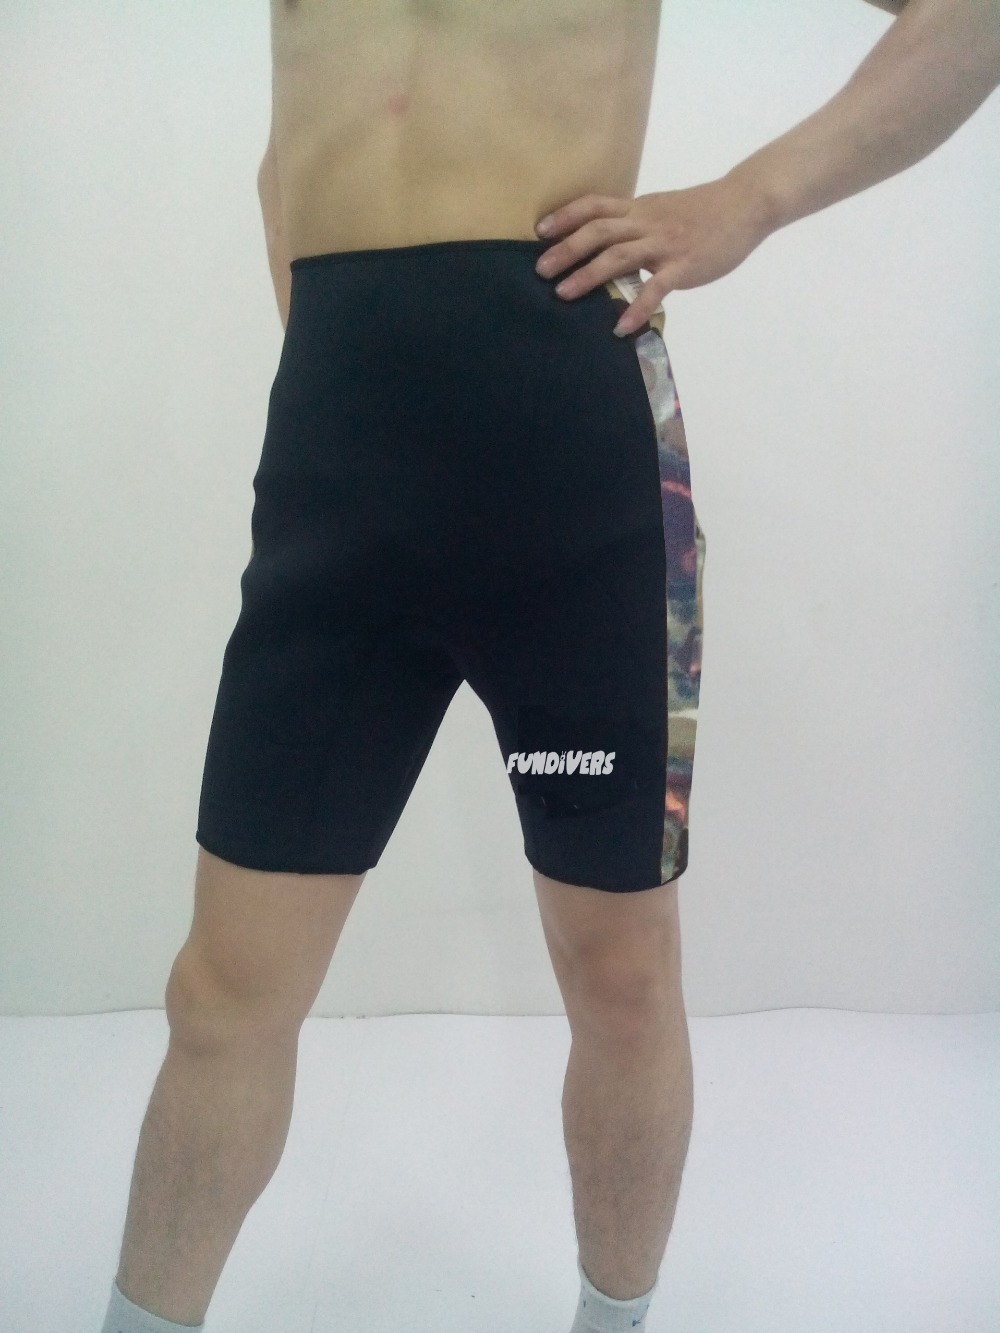 fundivers 2015 new selling hight quality 3MM camo neoprene shorts and wetsuit welcome to order(China (Mainland))